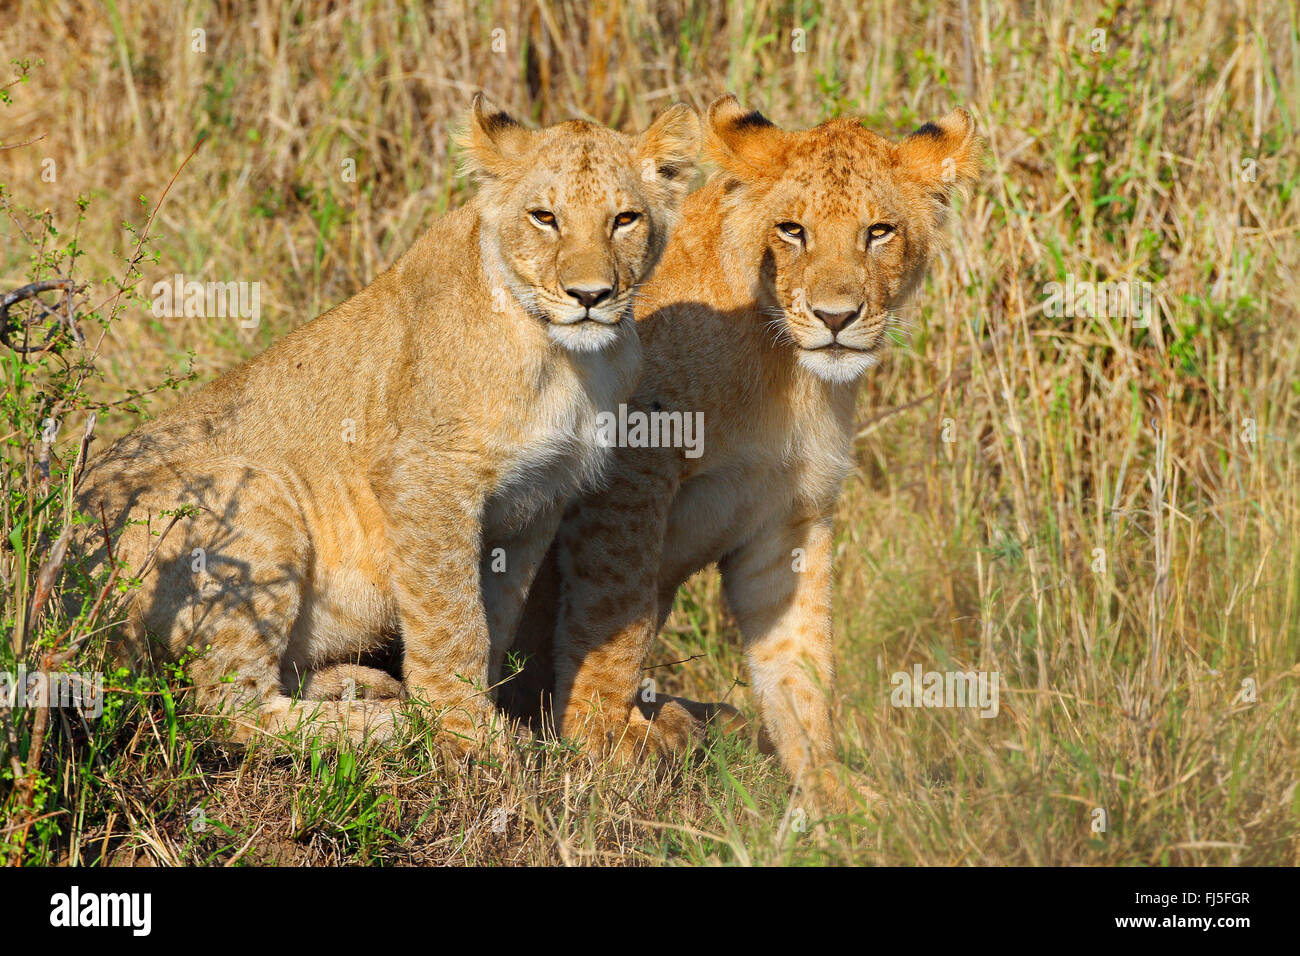 Lion (Panthera leo), deux oursons, Kenya, Masai Mara National Park Photo Stock